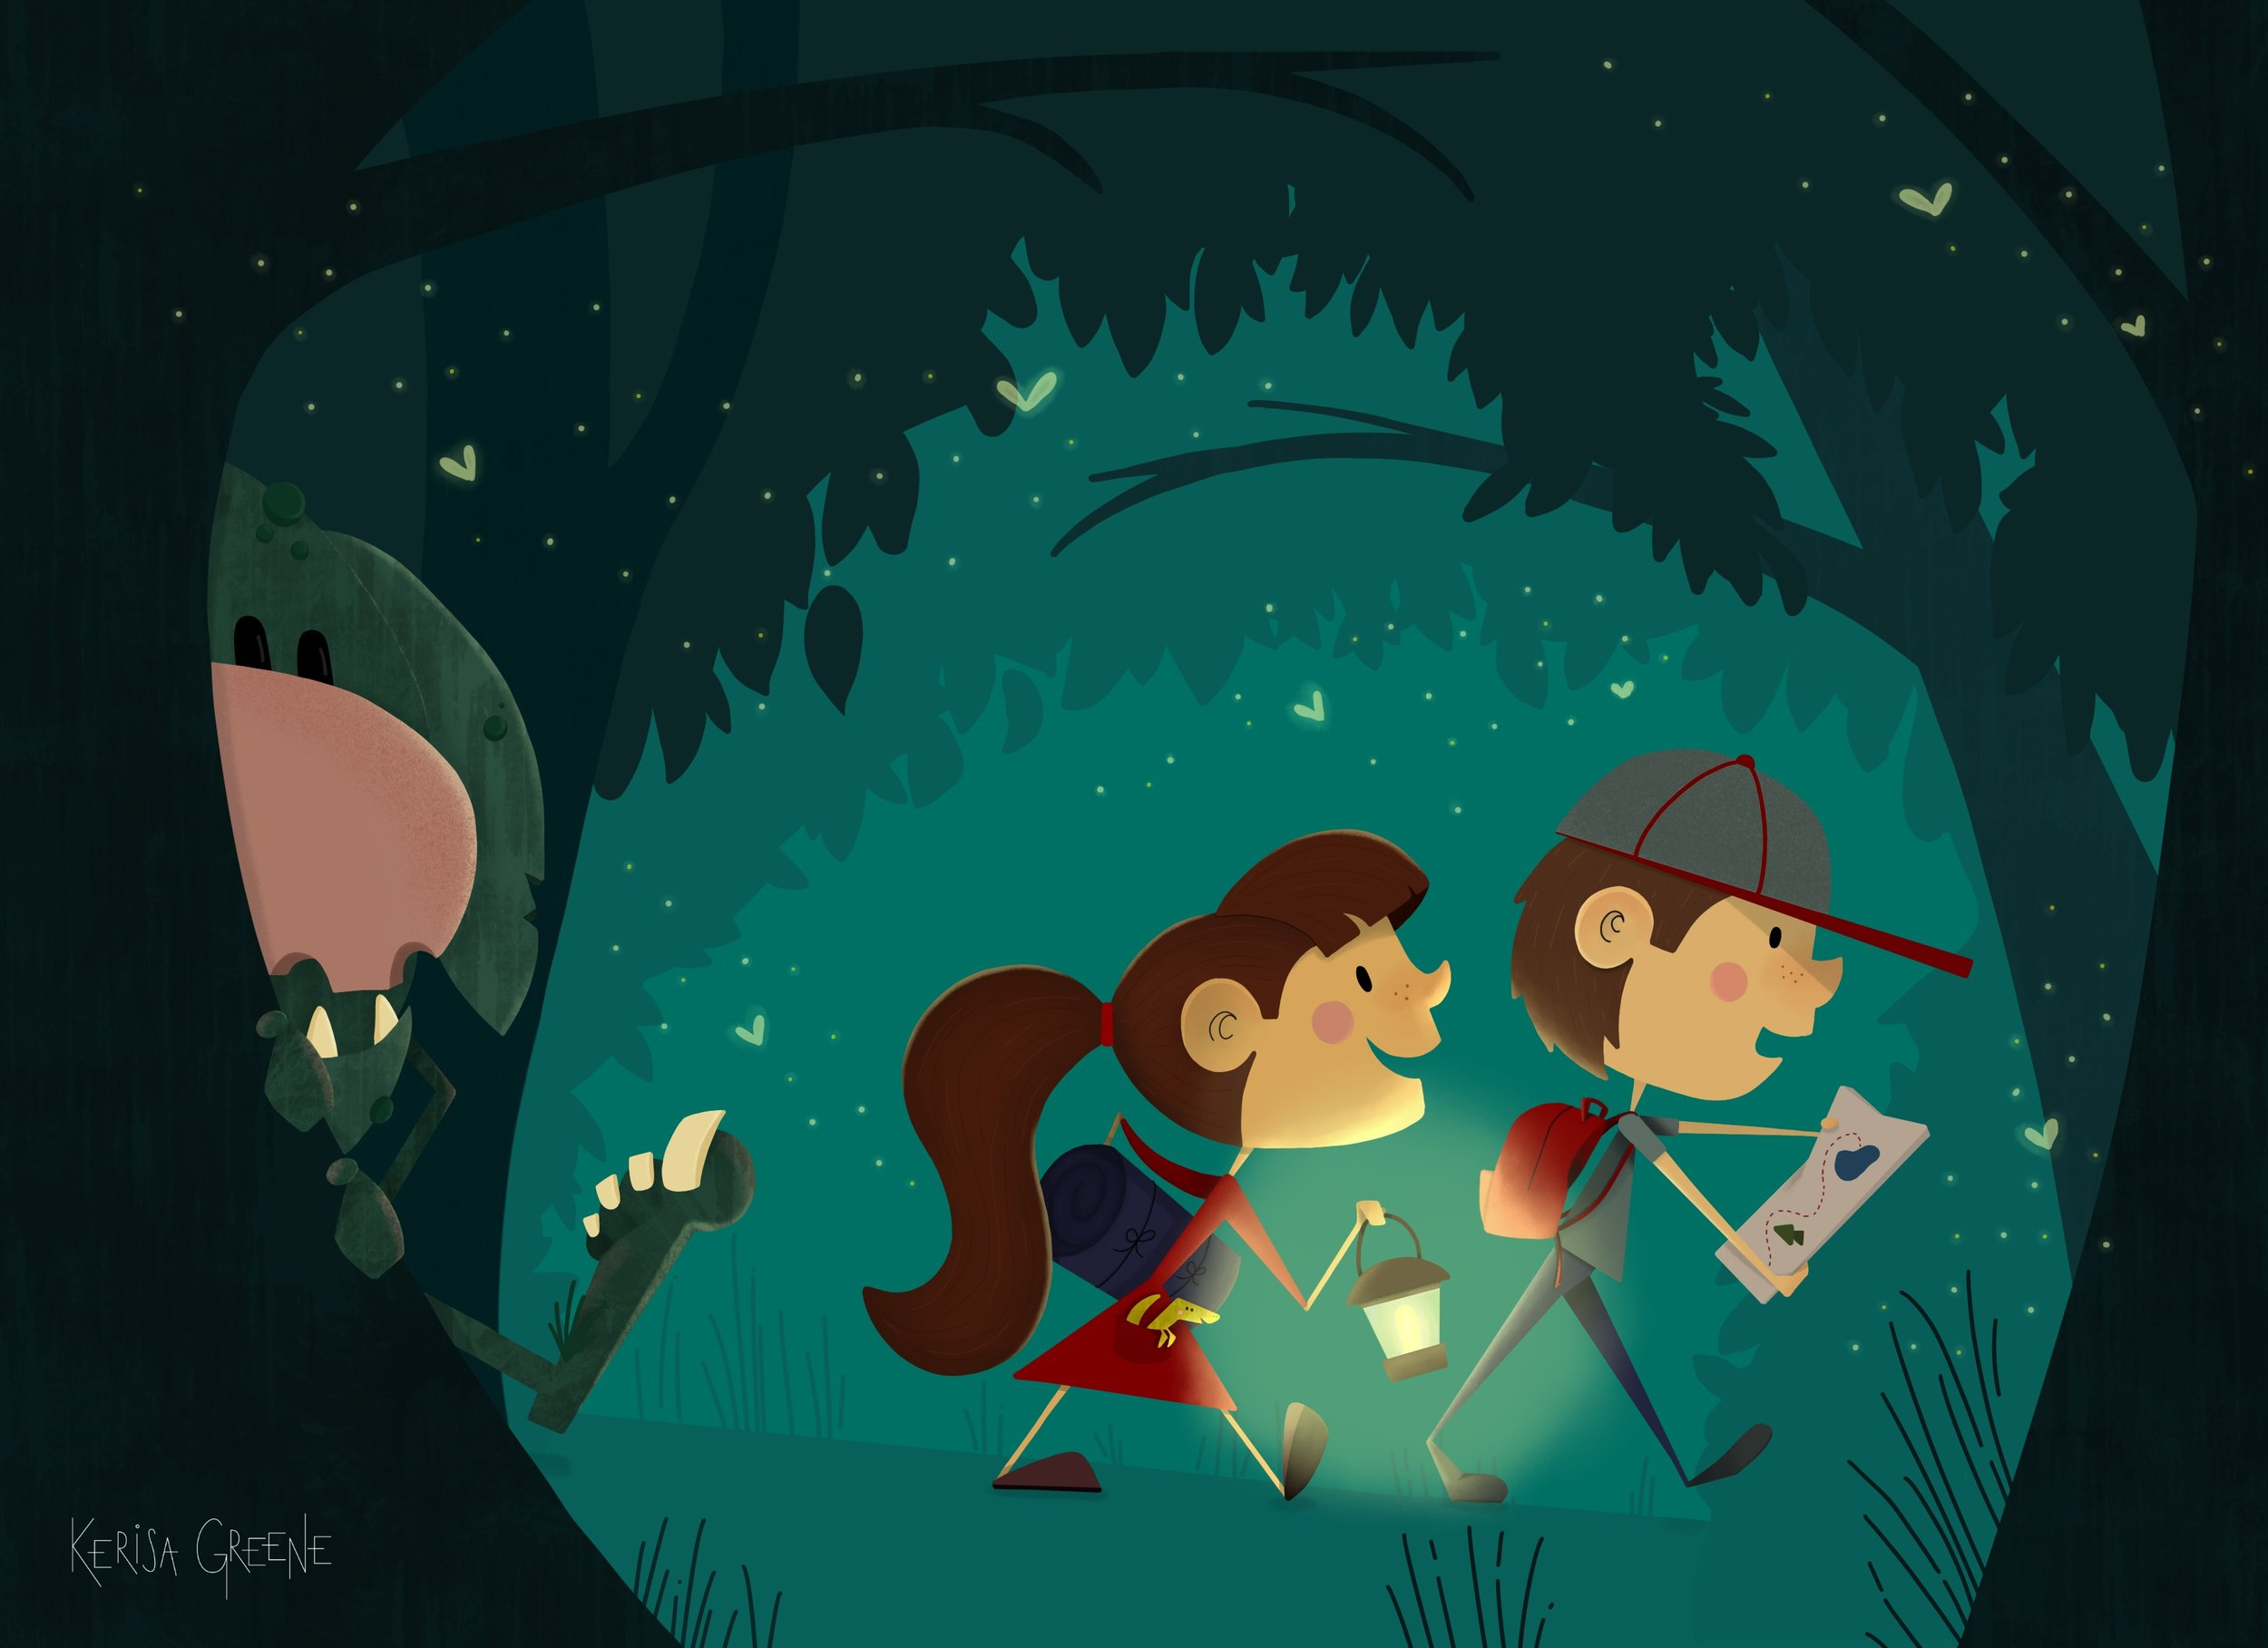 Kerisa Greene Kid Lit Illustration two kids hiking at night camping with a hidden troll following magical whimsical childrens book